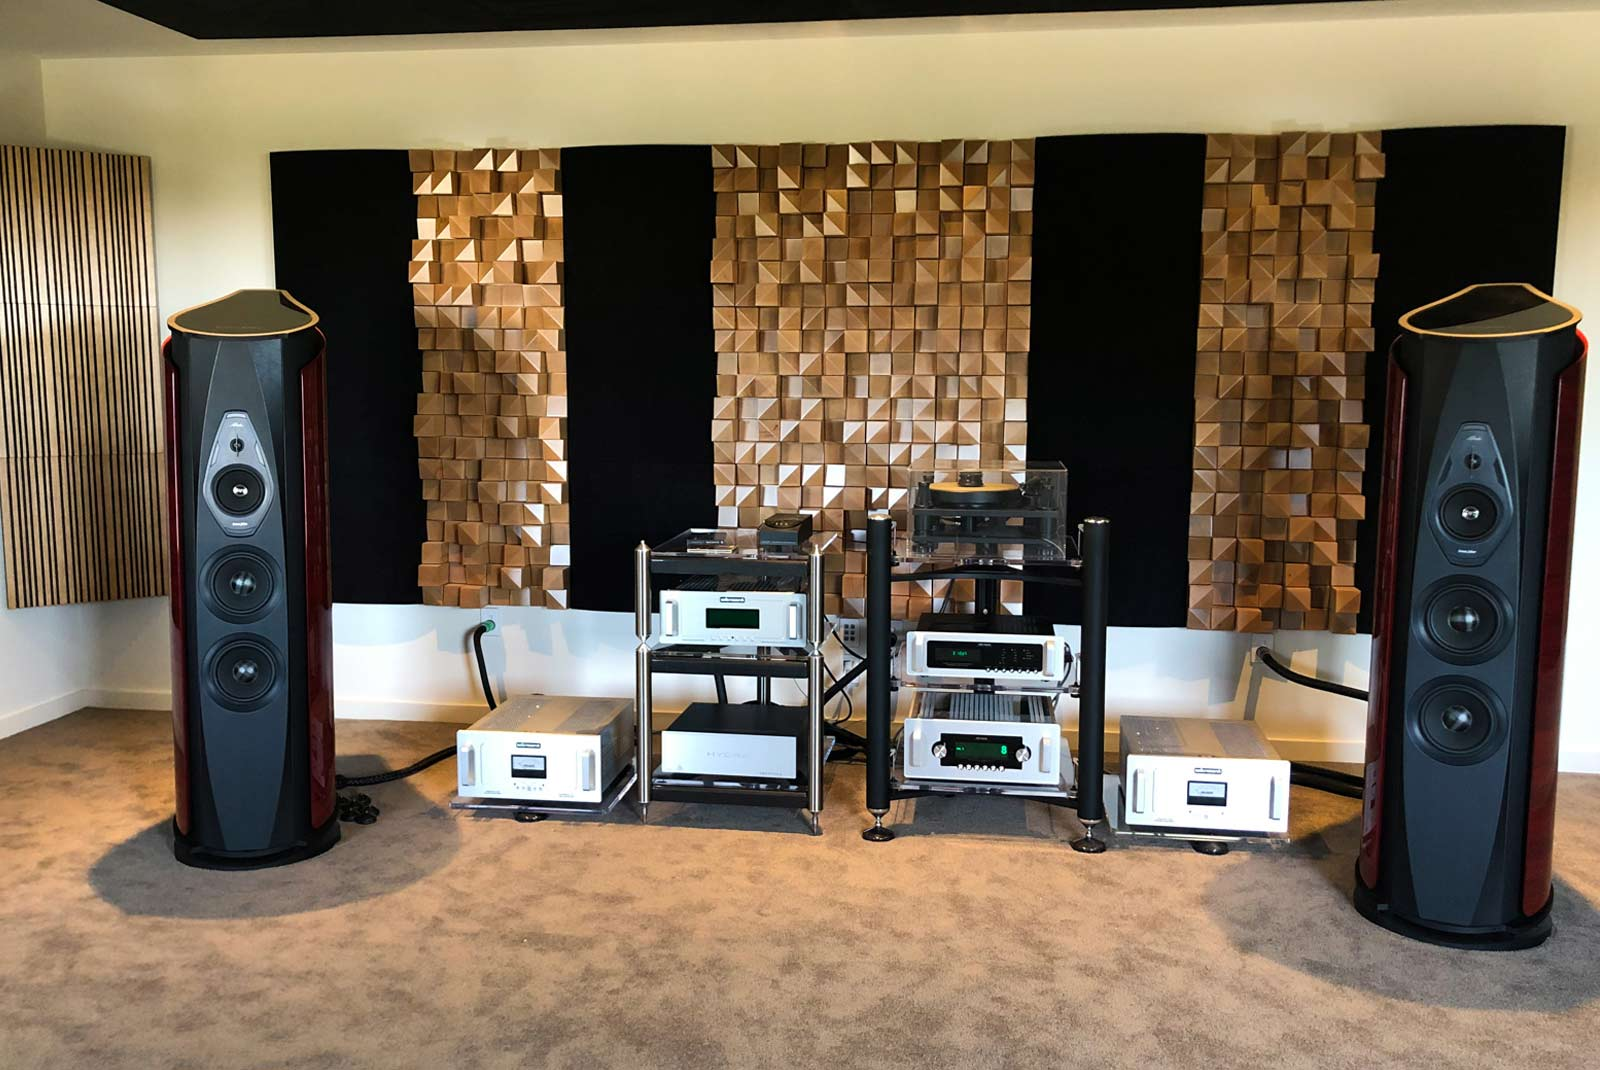 Accuphase amplifier sonus faber speakers soundline